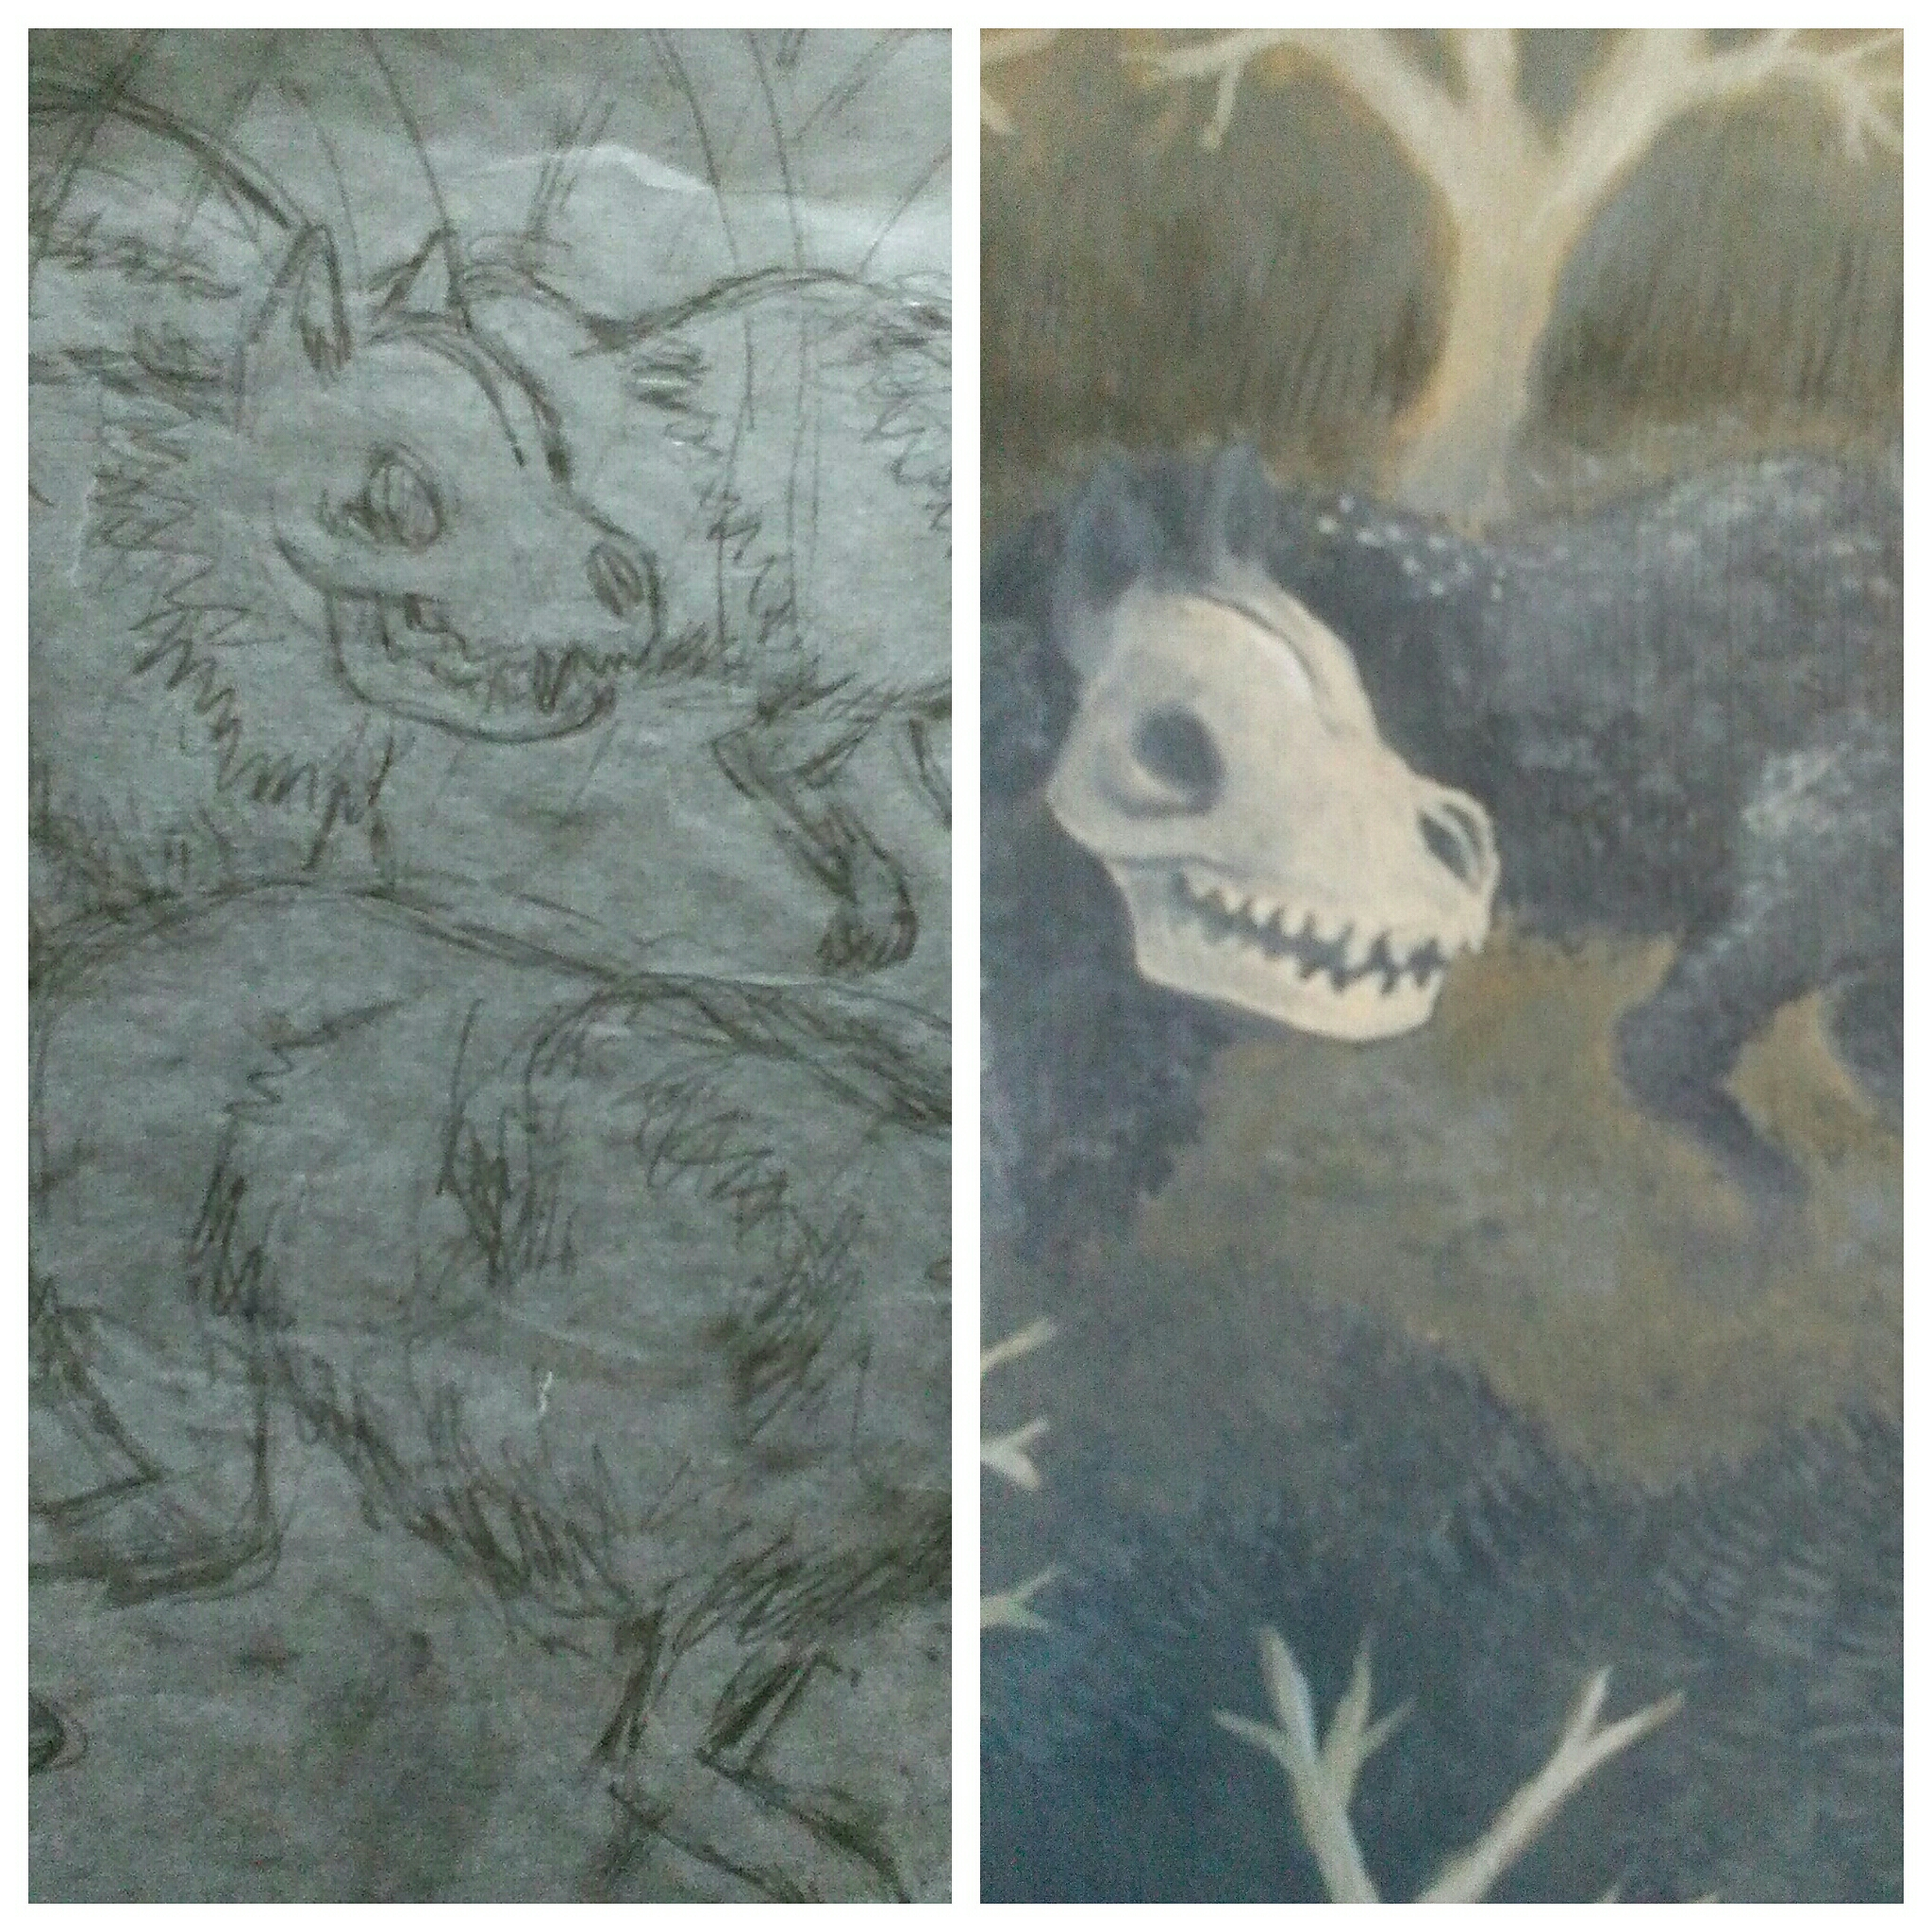 The sketch and the painting of one of the scary dogs a.k.a. hounds of hell.